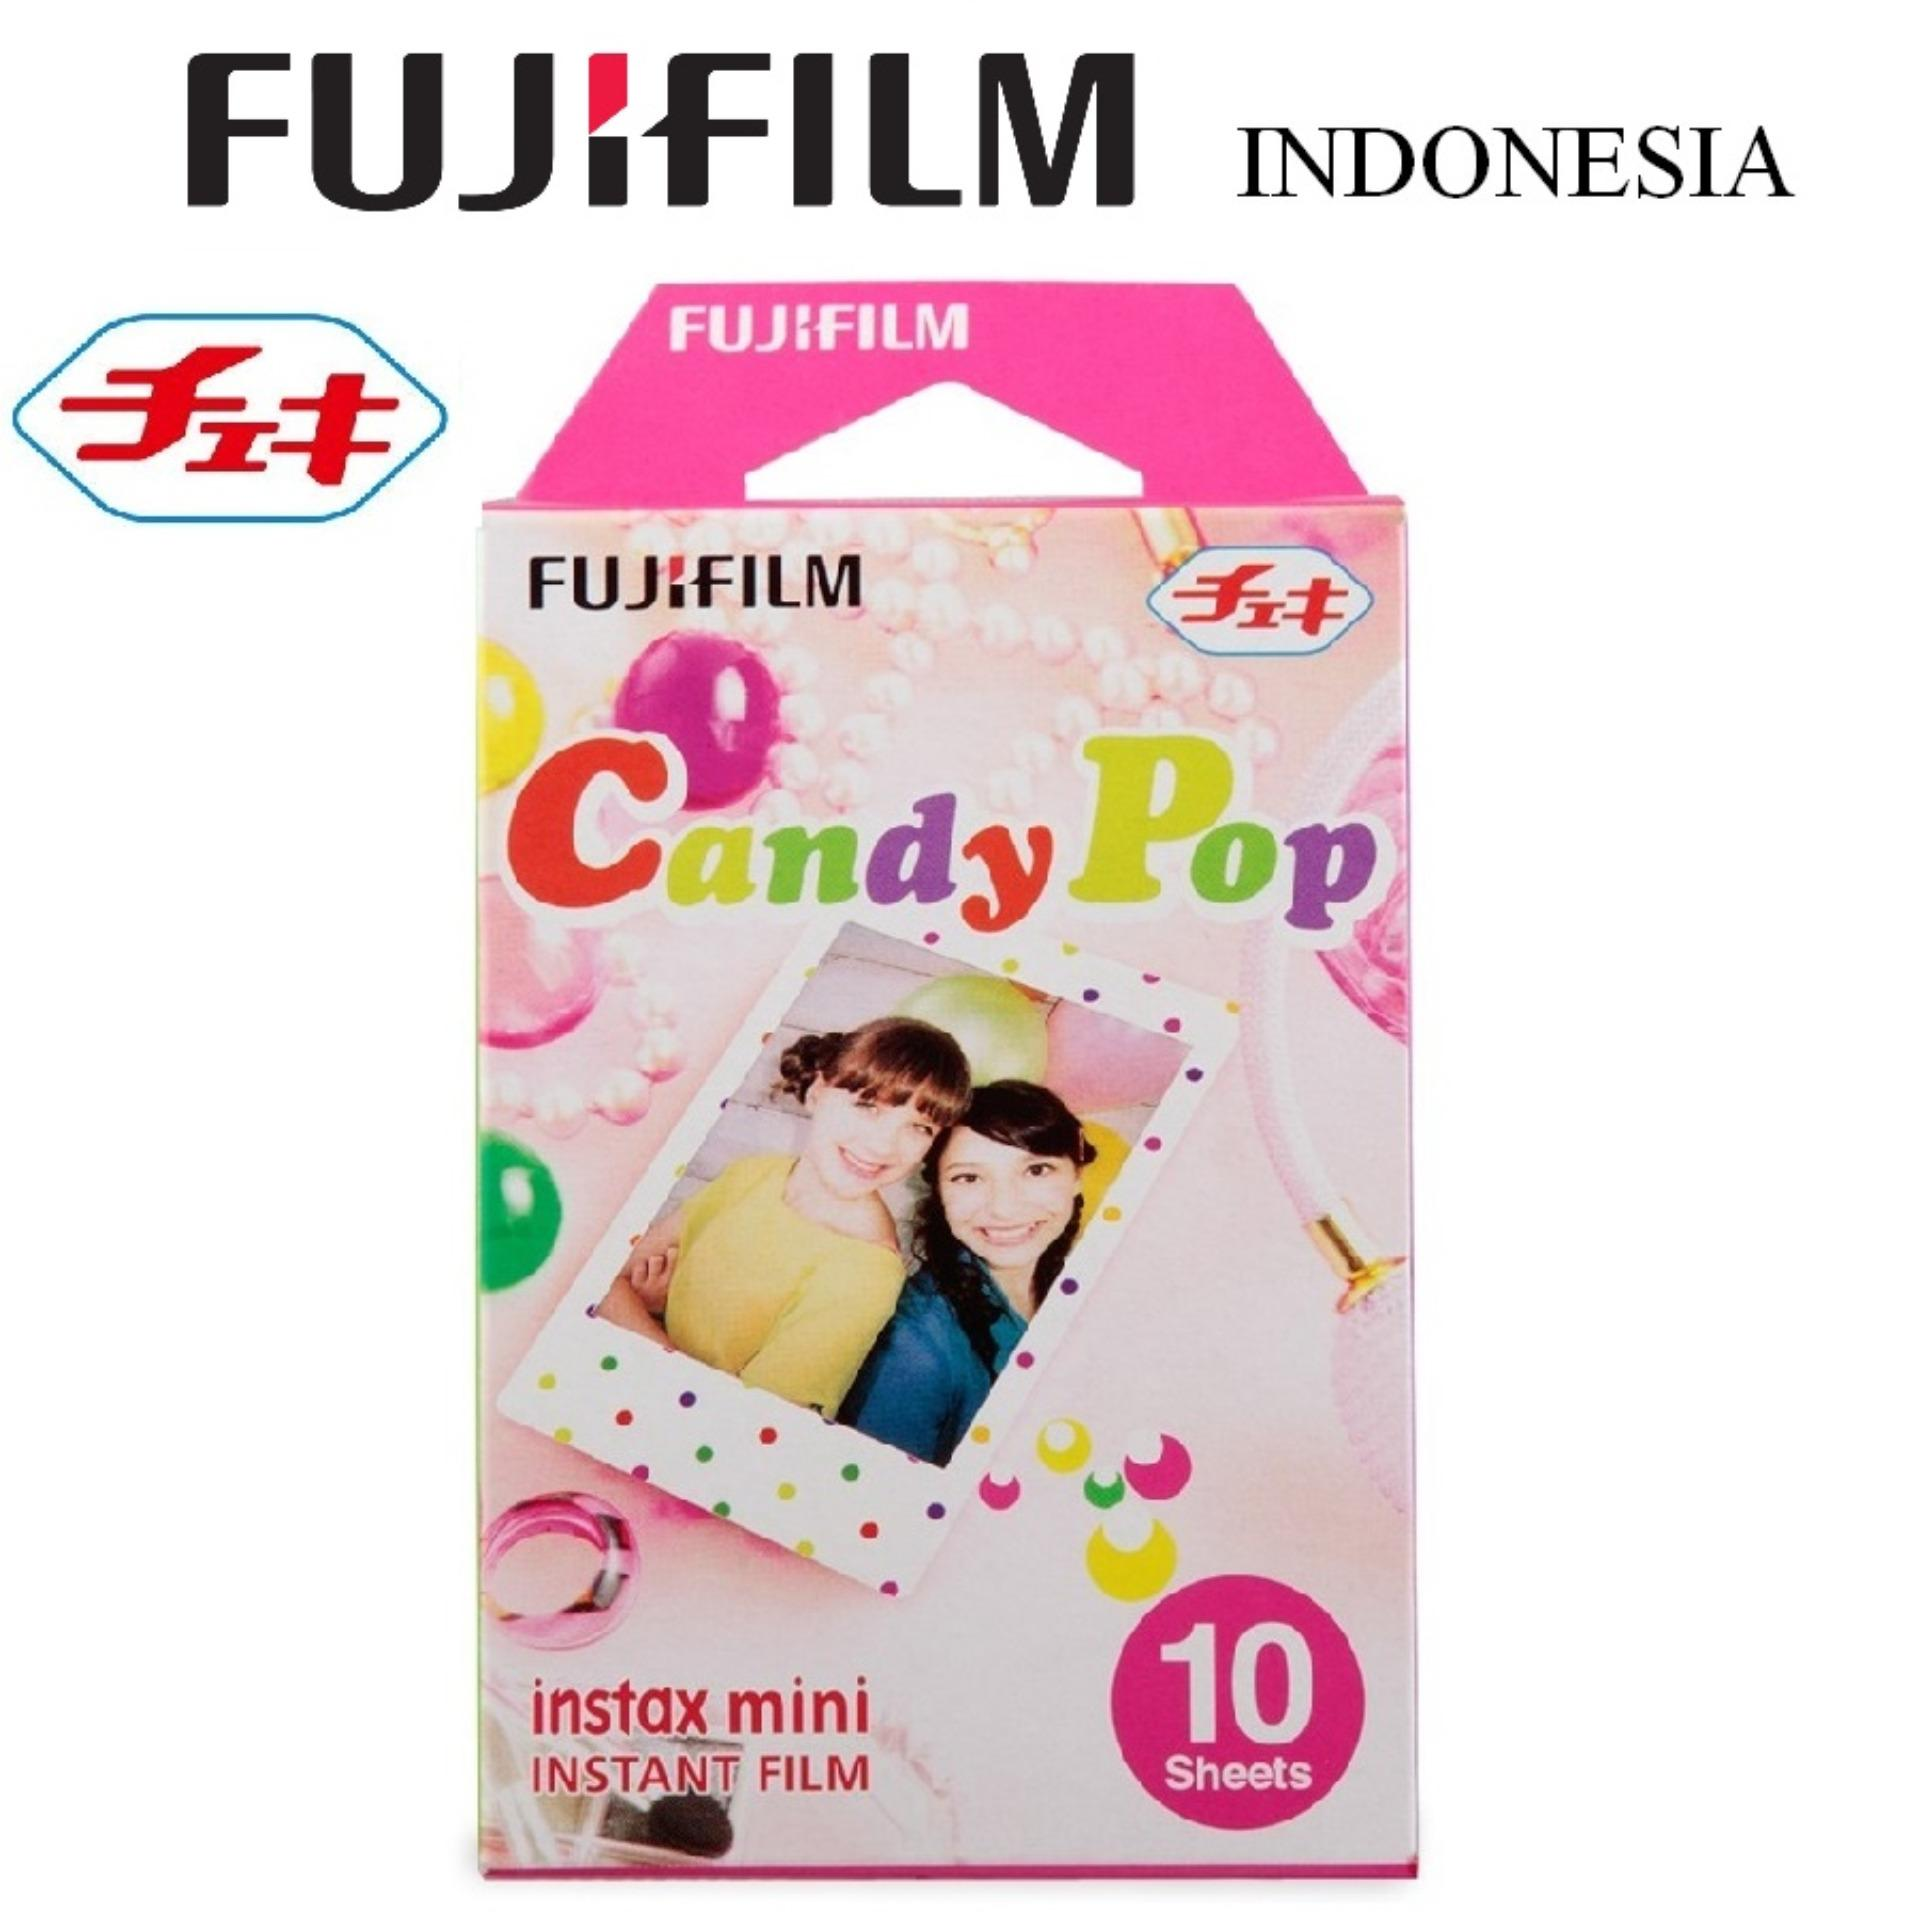 Fujifilm Refill Kamera Instax Mini Film Camera Candy Pop - 10 Lembar